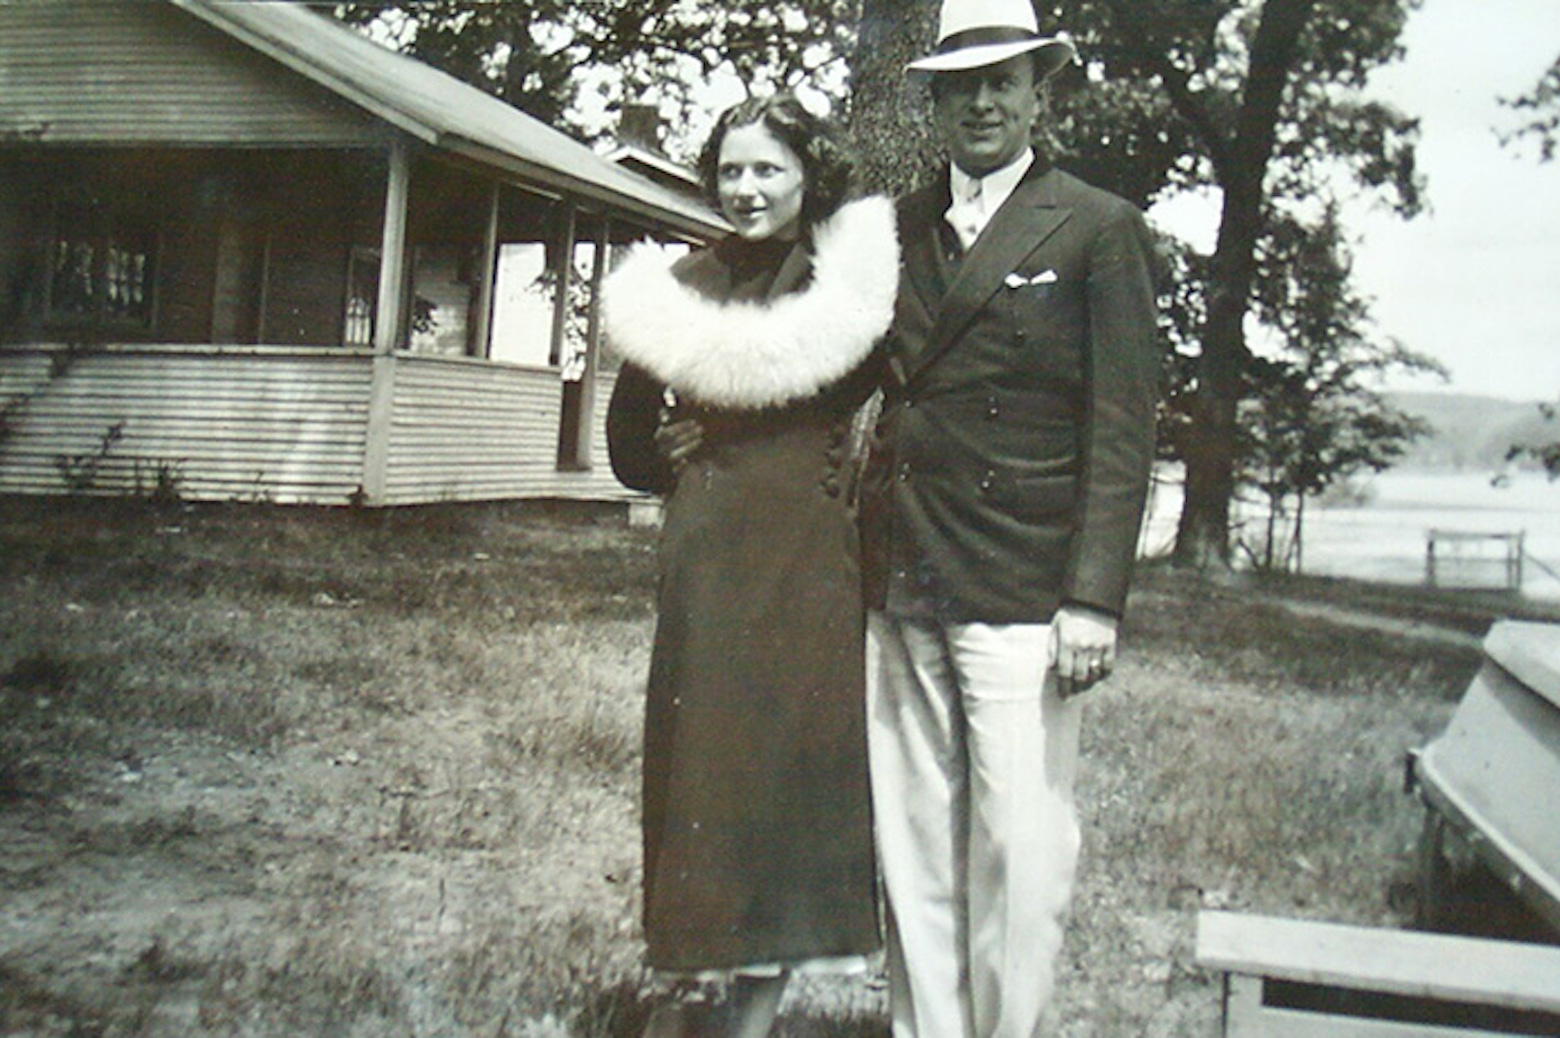 Clyde and Thelma Johnson at their cottage on the lake